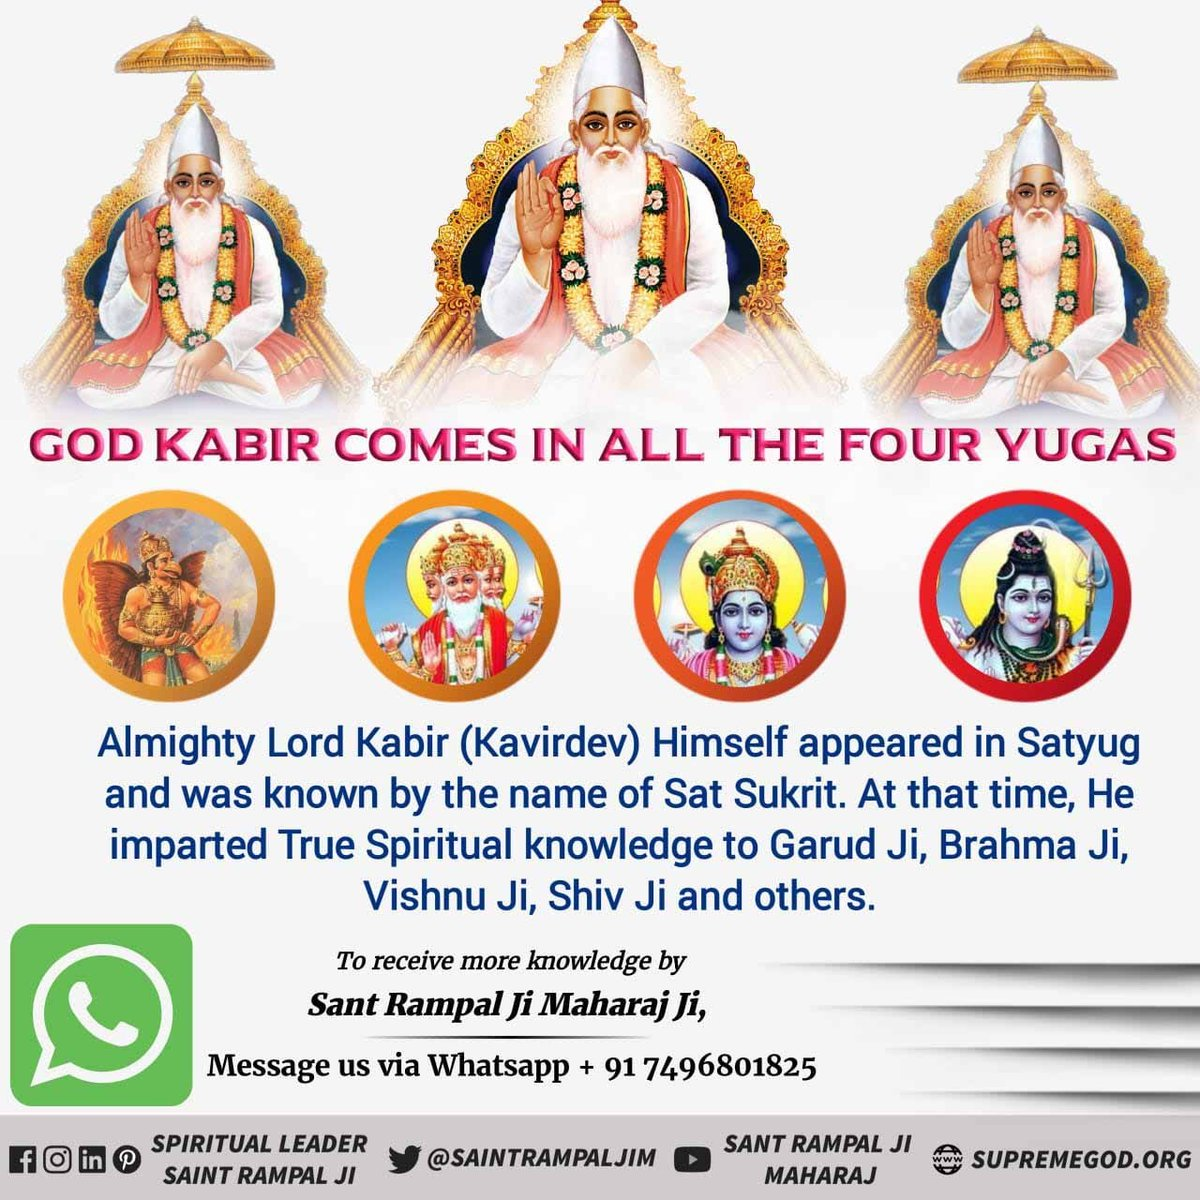 There is not even a trace of peace and comfort in this Kaal Brahm's lok. The vices of lust, anger, greed, affection, arrogance, love-hatred, joy-sorrow are troubling every living being. But there is Supreme peace. #अमरलोक_VS_मृत्युलोक #ThursdayMotivation #ThursdayThoughts .